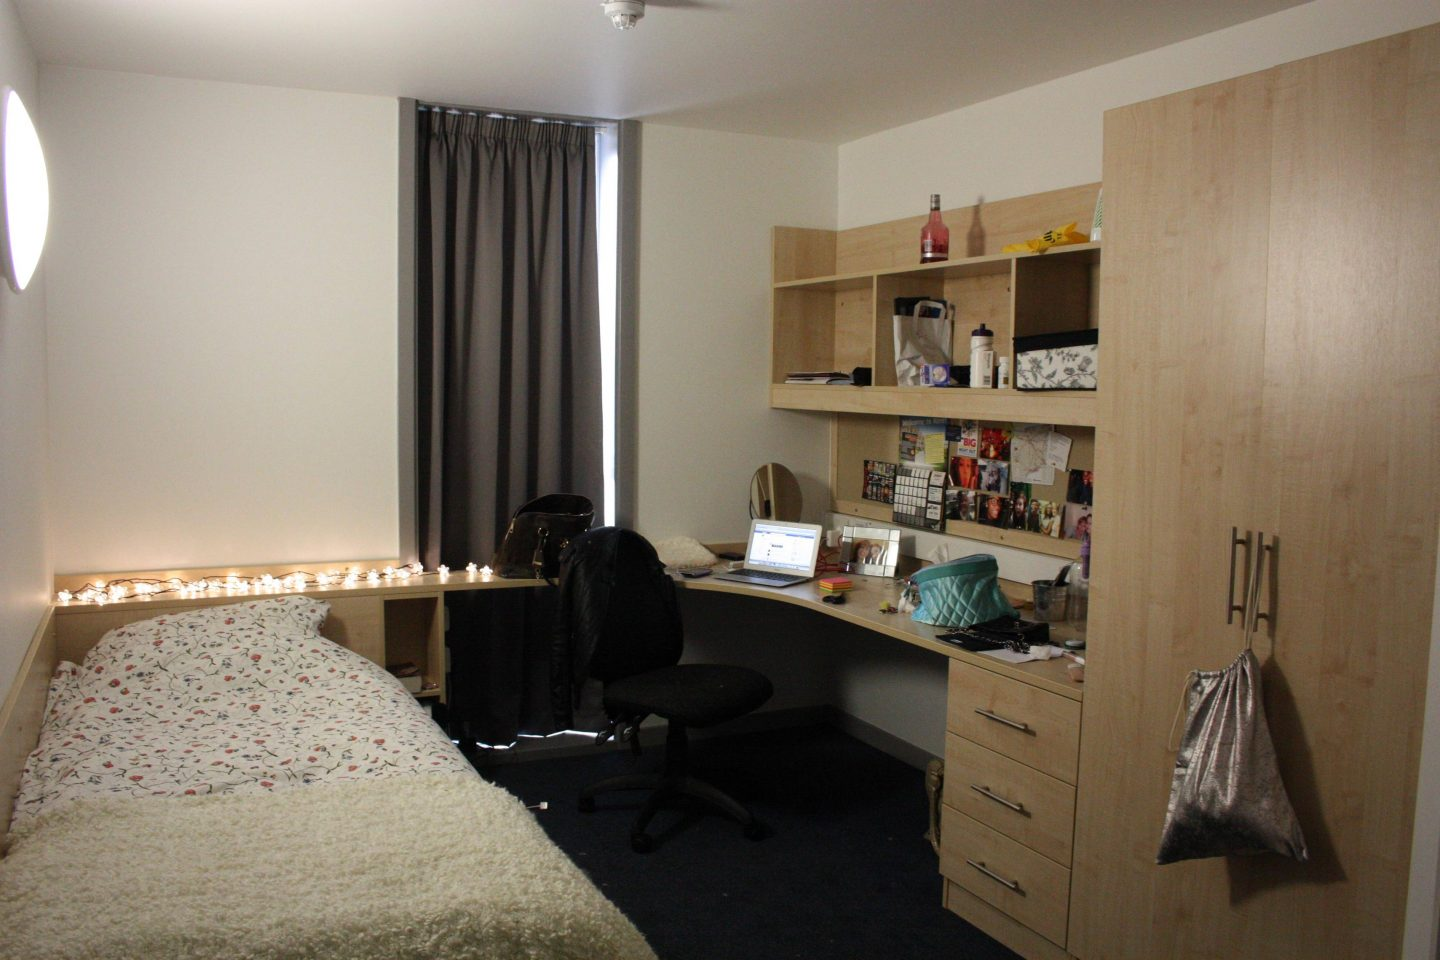 a photograph of a university dorm room; a floral duvet sits on a bed covered by a fluffy white blanket, white fairy lights just above it; a desk chair sits at a desk with a macbook on a table, in front of a noticeboard full of photographs